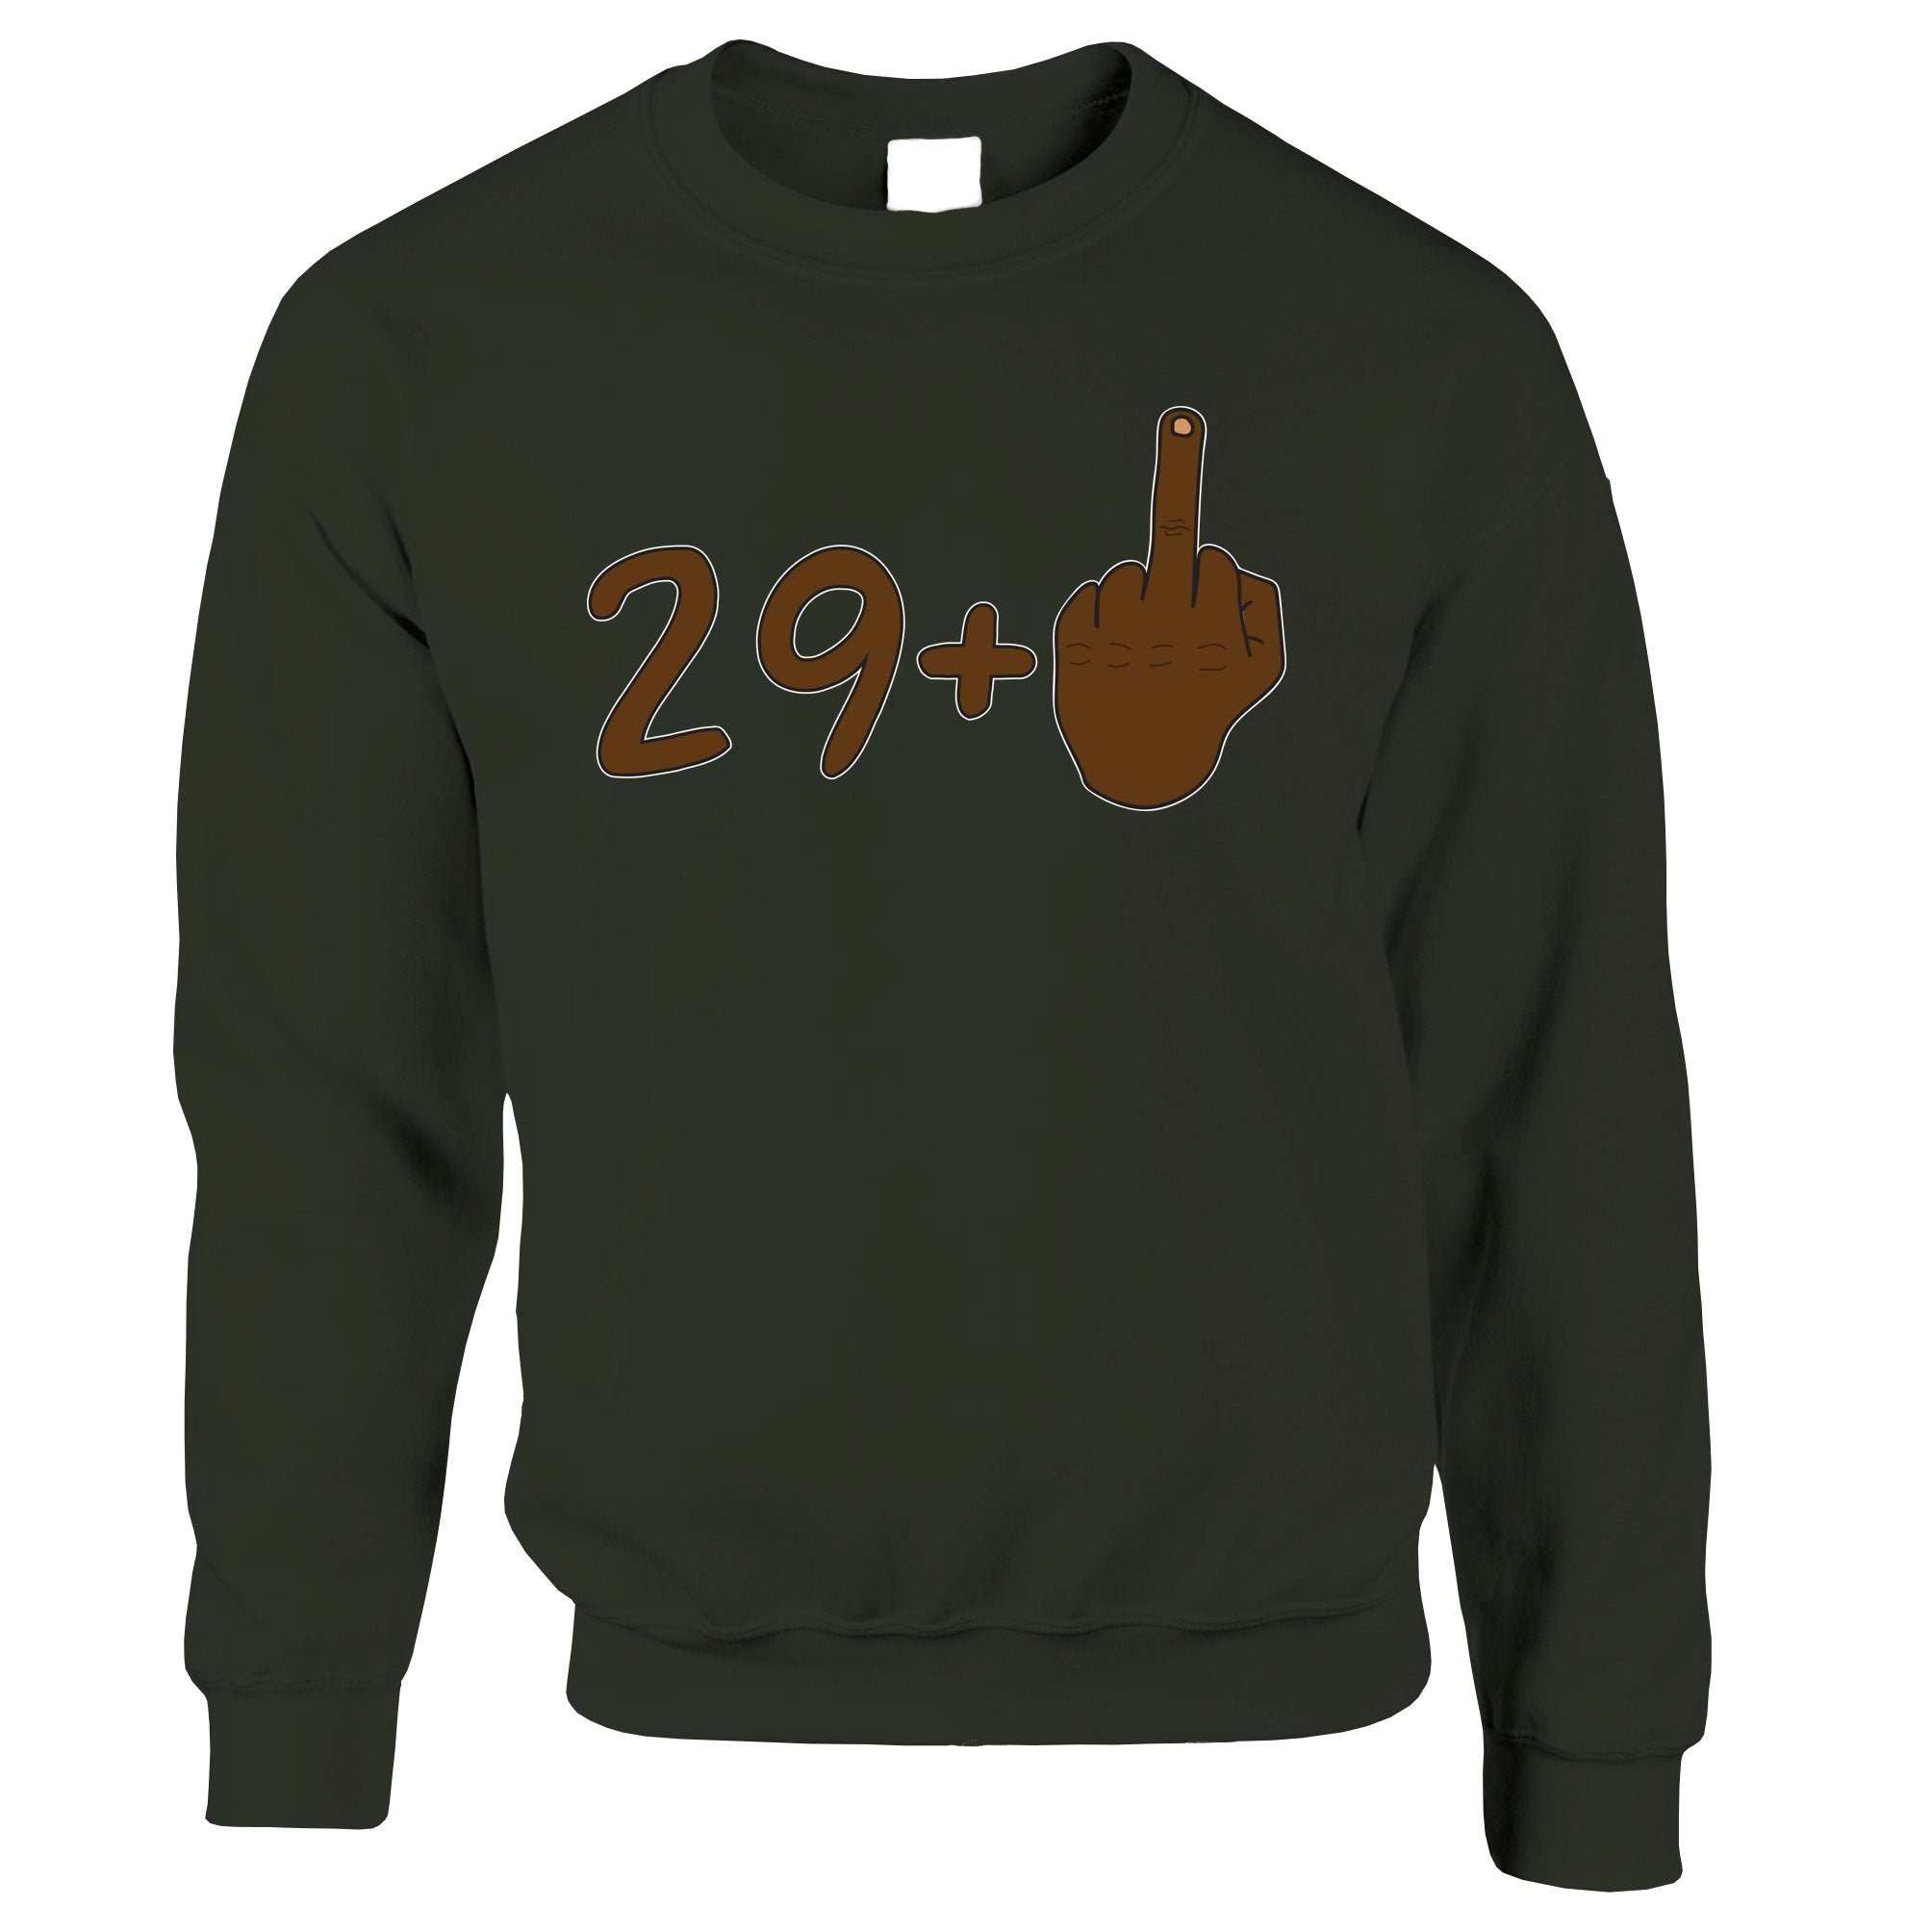 Rude 30th Birthday Jumper Black Middle Finger Sweatshirt Sweater